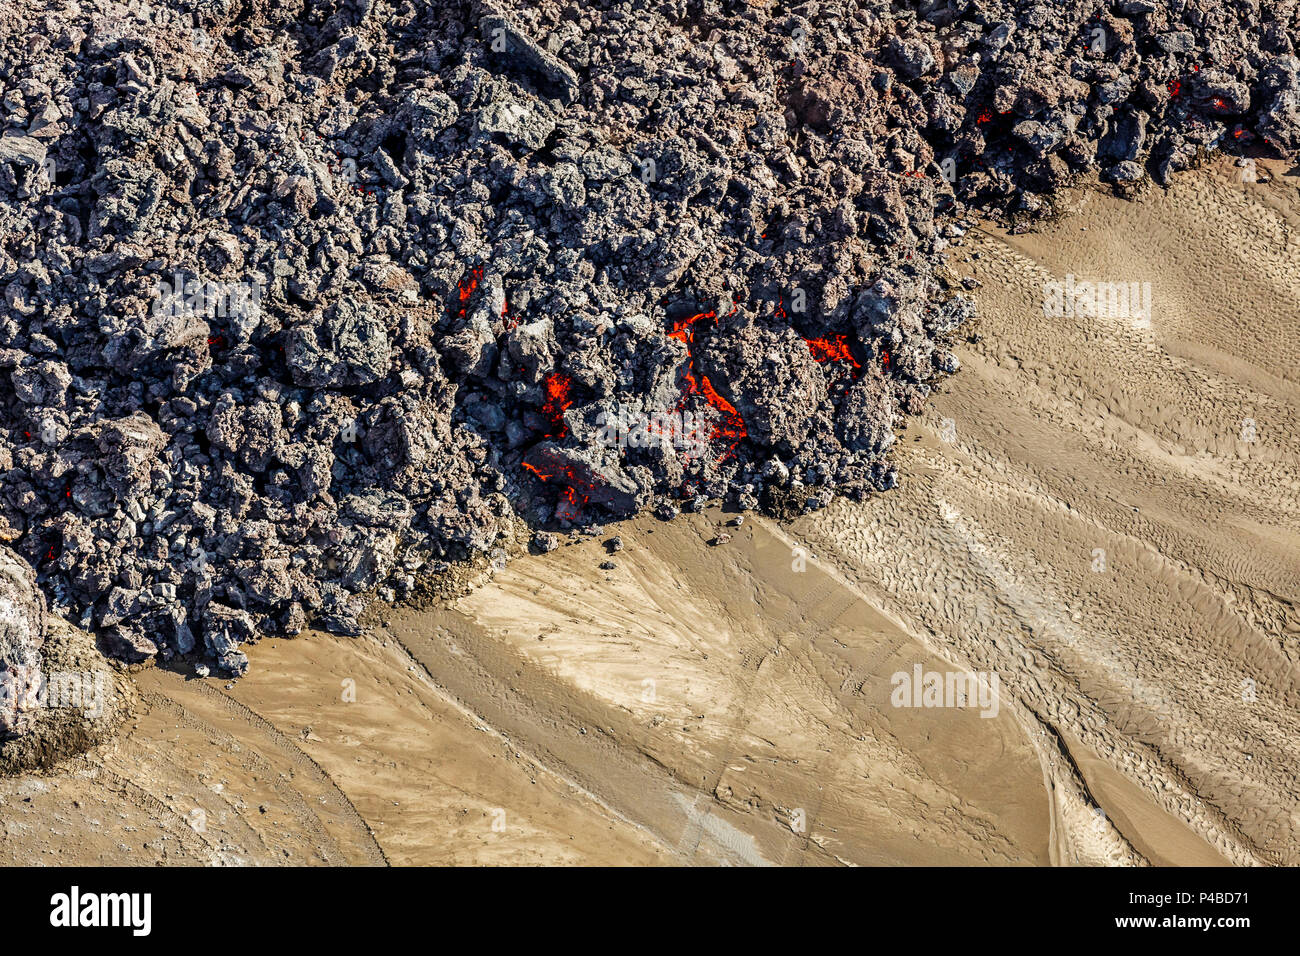 Hot lava creeping by tire tracks. Eruption site at Holuhraun near Bardarbunga Volcano, Iceland. August 29, 2014 a fissure eruption started in Holuhraun at the northern end of a magma intrusion, which had moved progressively north, from the Bardarbunga volcano. . Picture Date-Sept. 3, 2014 - Stock Image